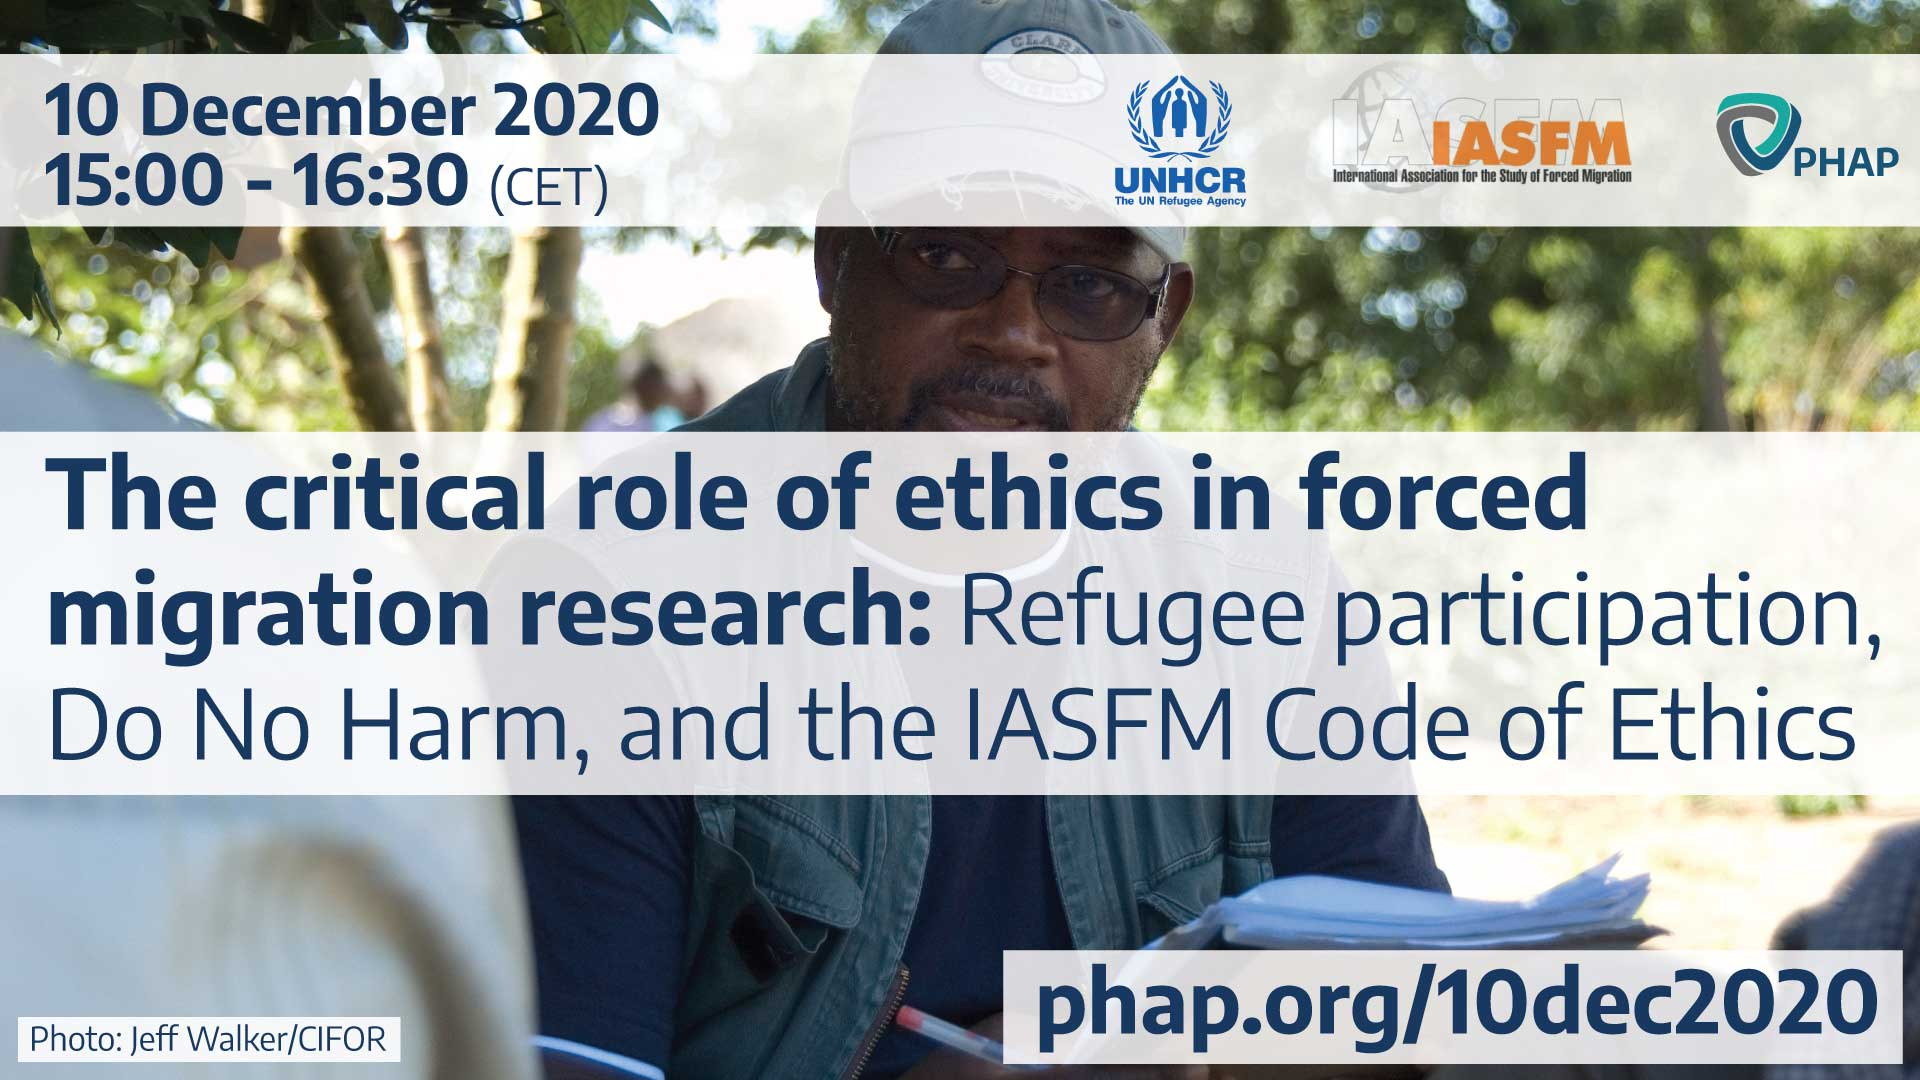 Banner for The critical role of ethics in forced migration research: Refugee participation, Do No Harm, and the IASFM Code of Ethics